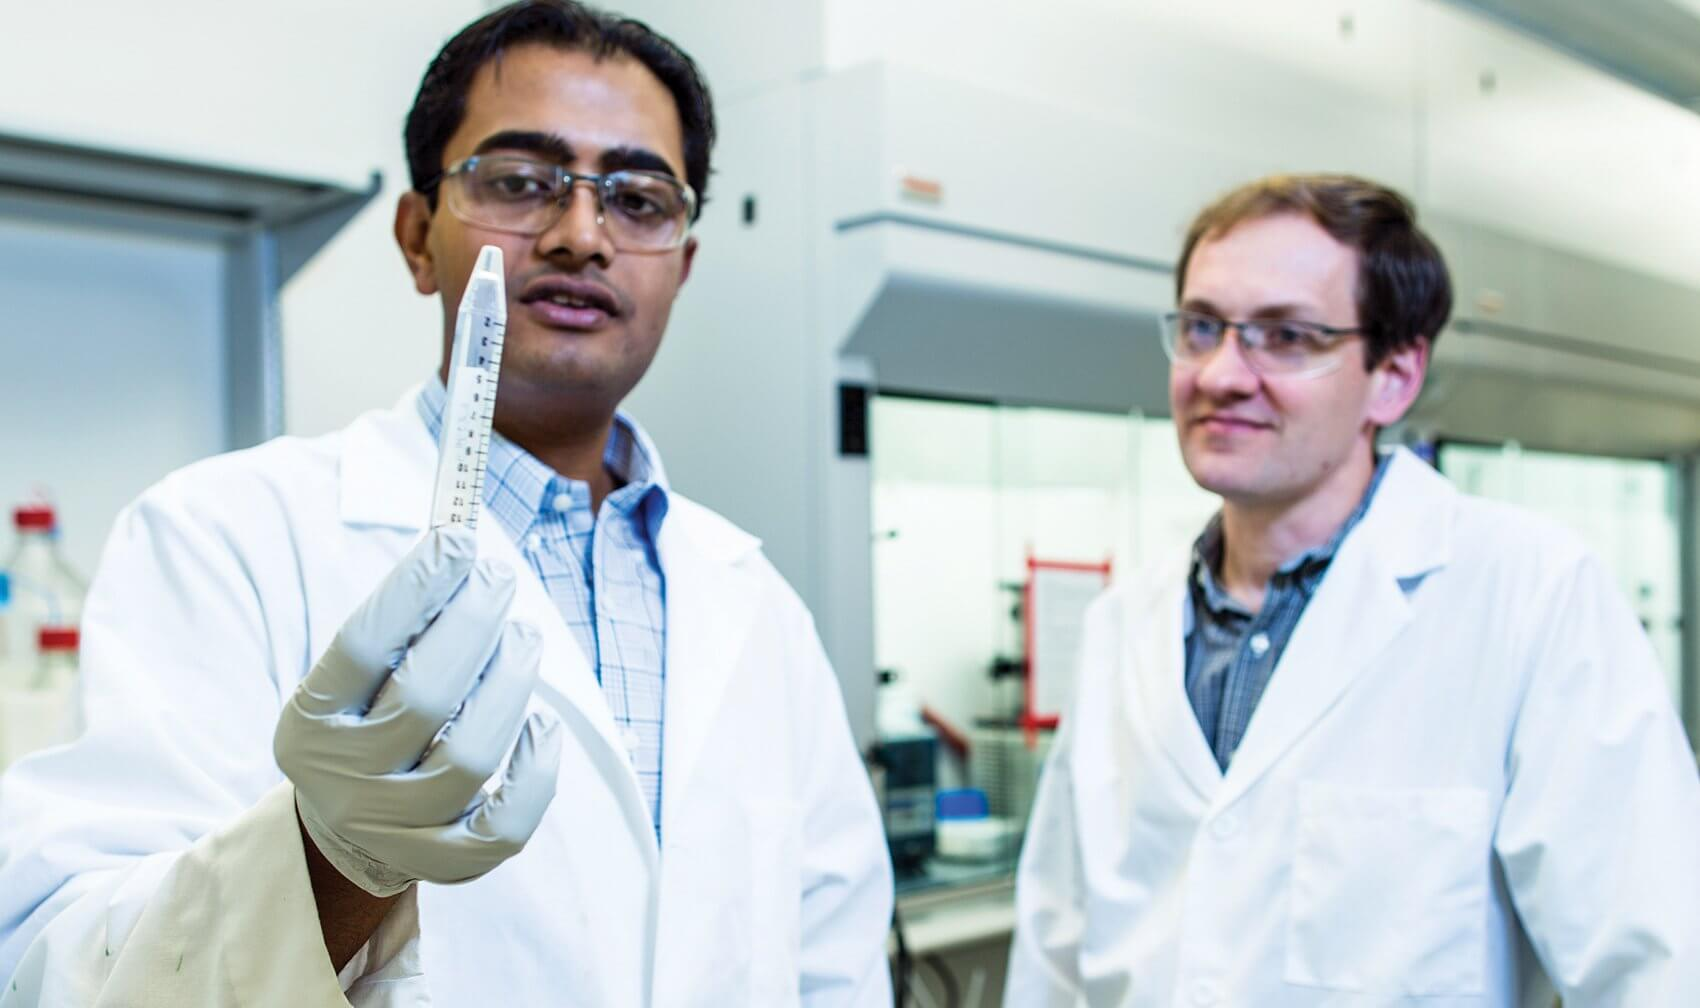 Vivek Kumar, Ph.D. and Jeff Hartgerink, Ph.D., display a vial of hydrogel they developed to stop bleeding in surgical patients.